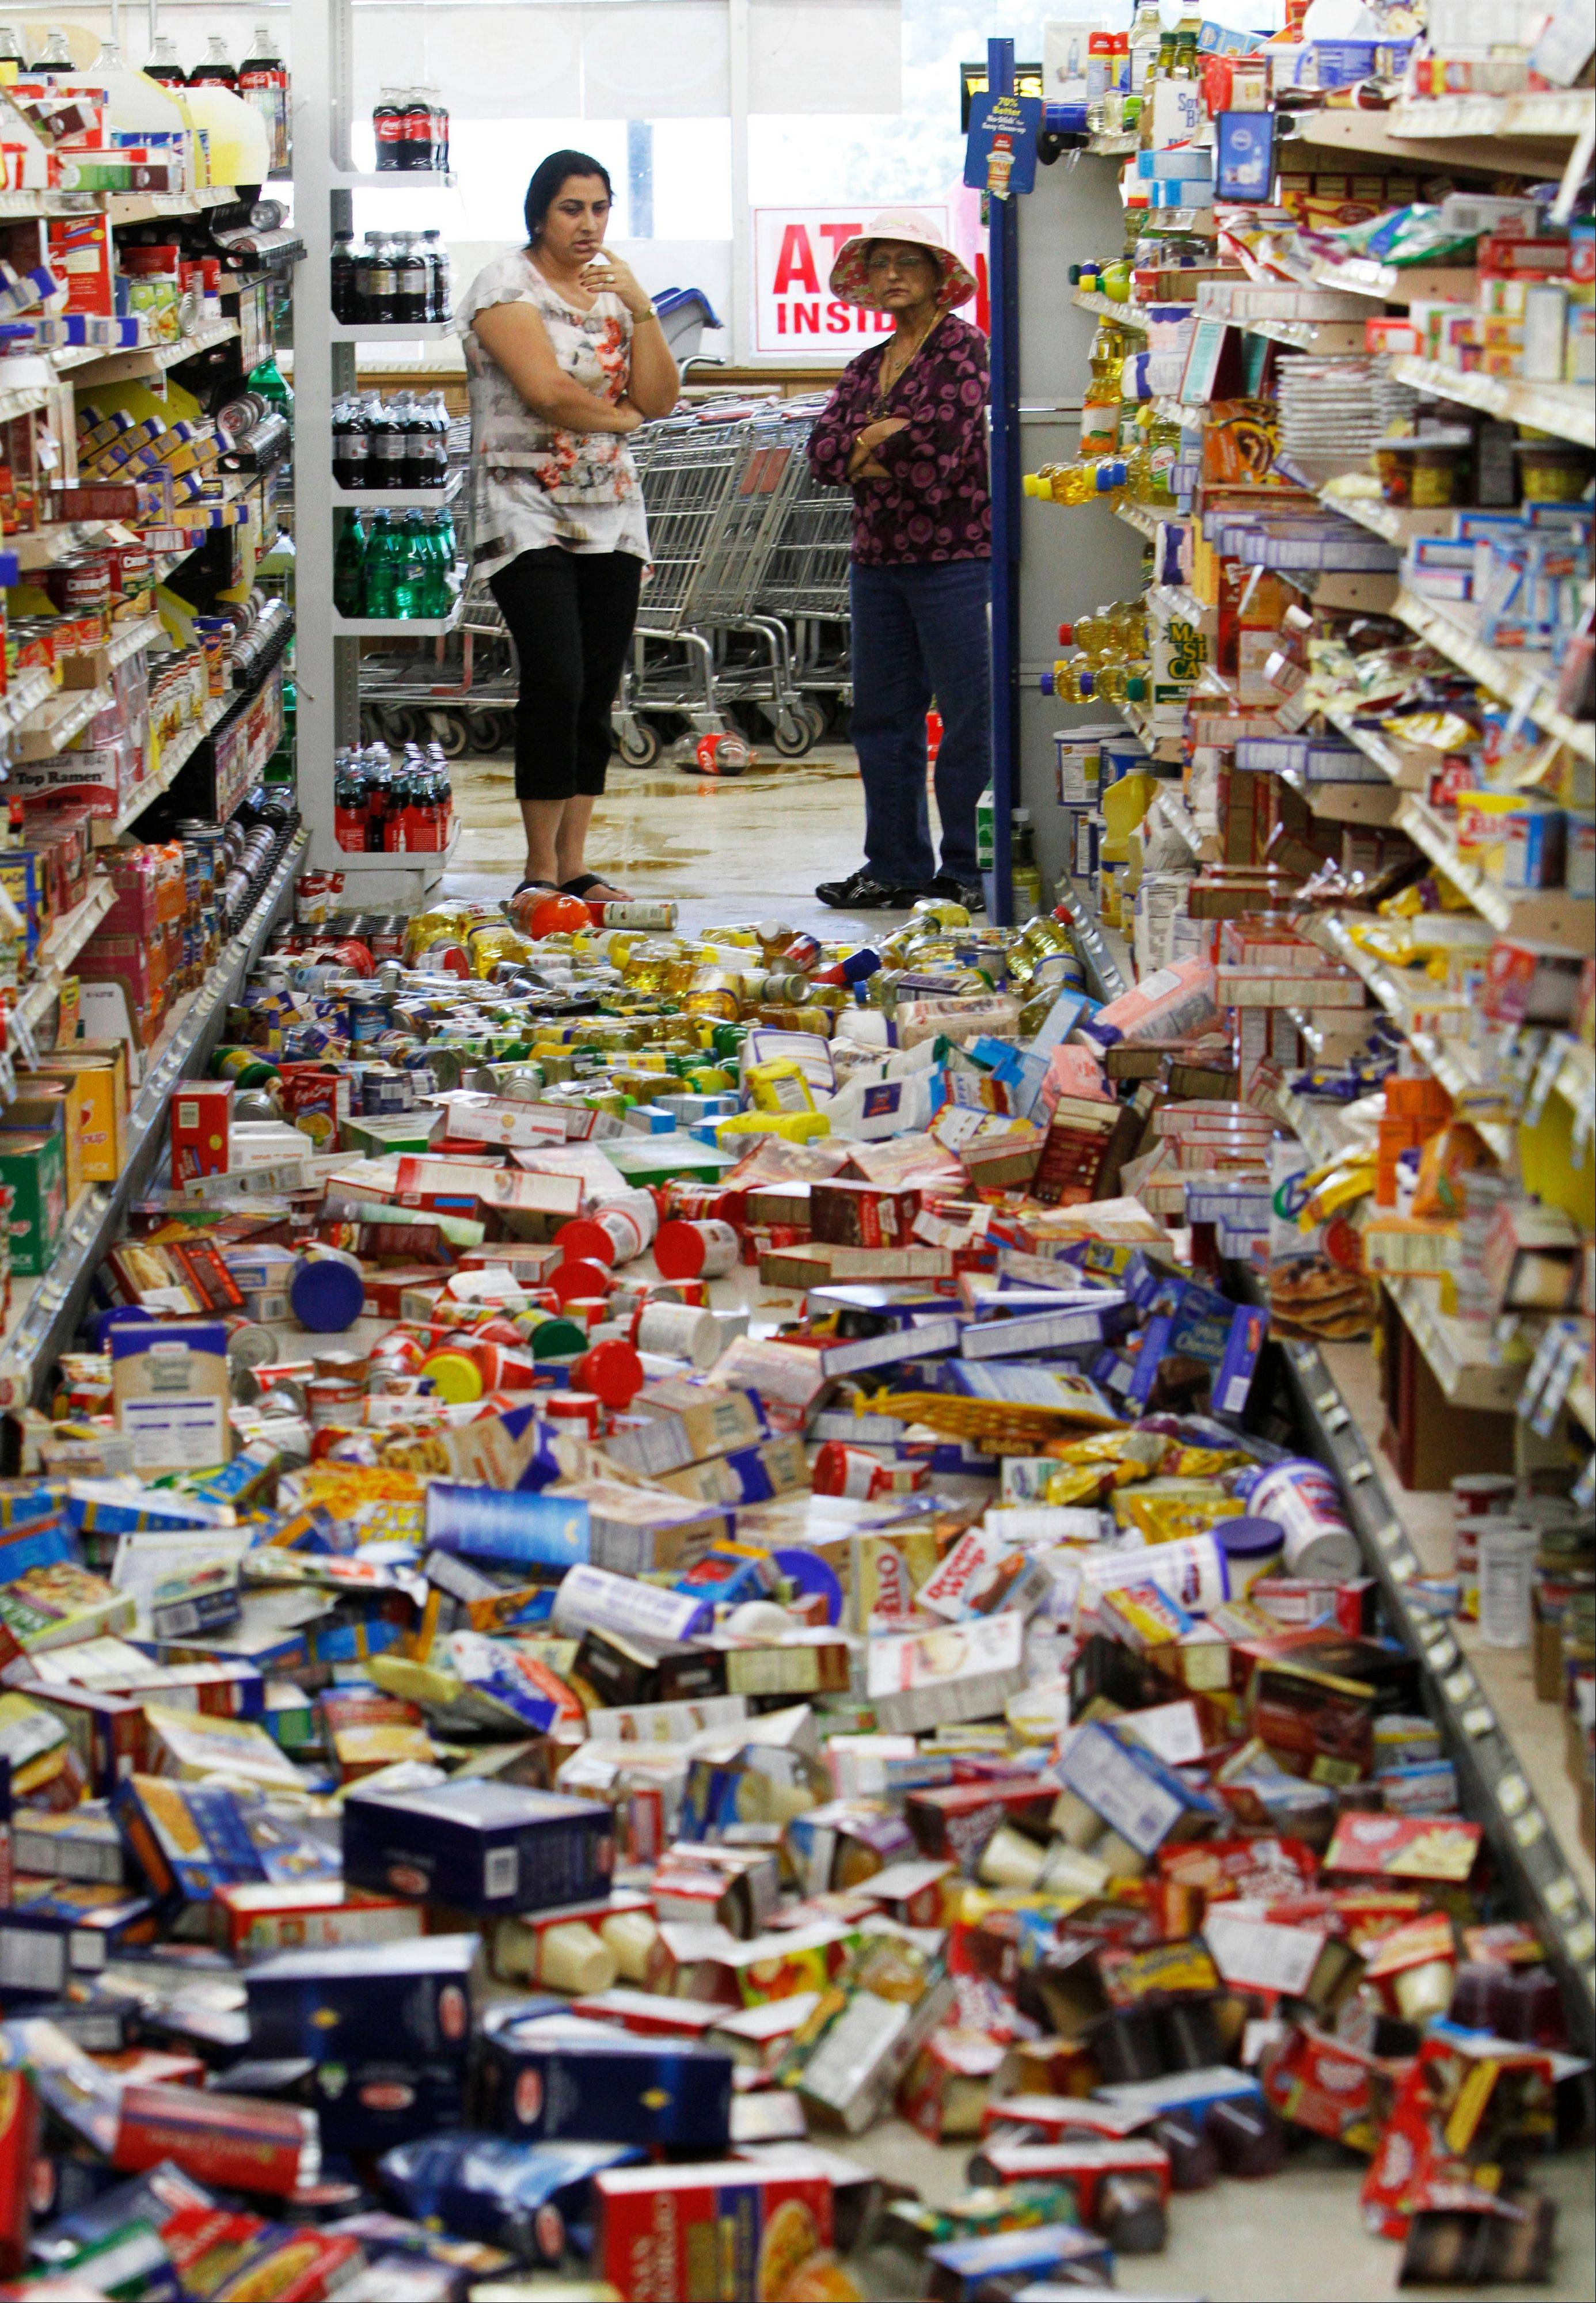 Debris covers the floor of the Miller's Mart food store in Mineral, Va., a small town northwest of Richmond near the earthquake's epicenter, Tuesday, Aug. 23, 2011. The most powerful earthquake to strike the East Coast in 67 years shook buildings and rattled nerves from South Carolina to Maine.